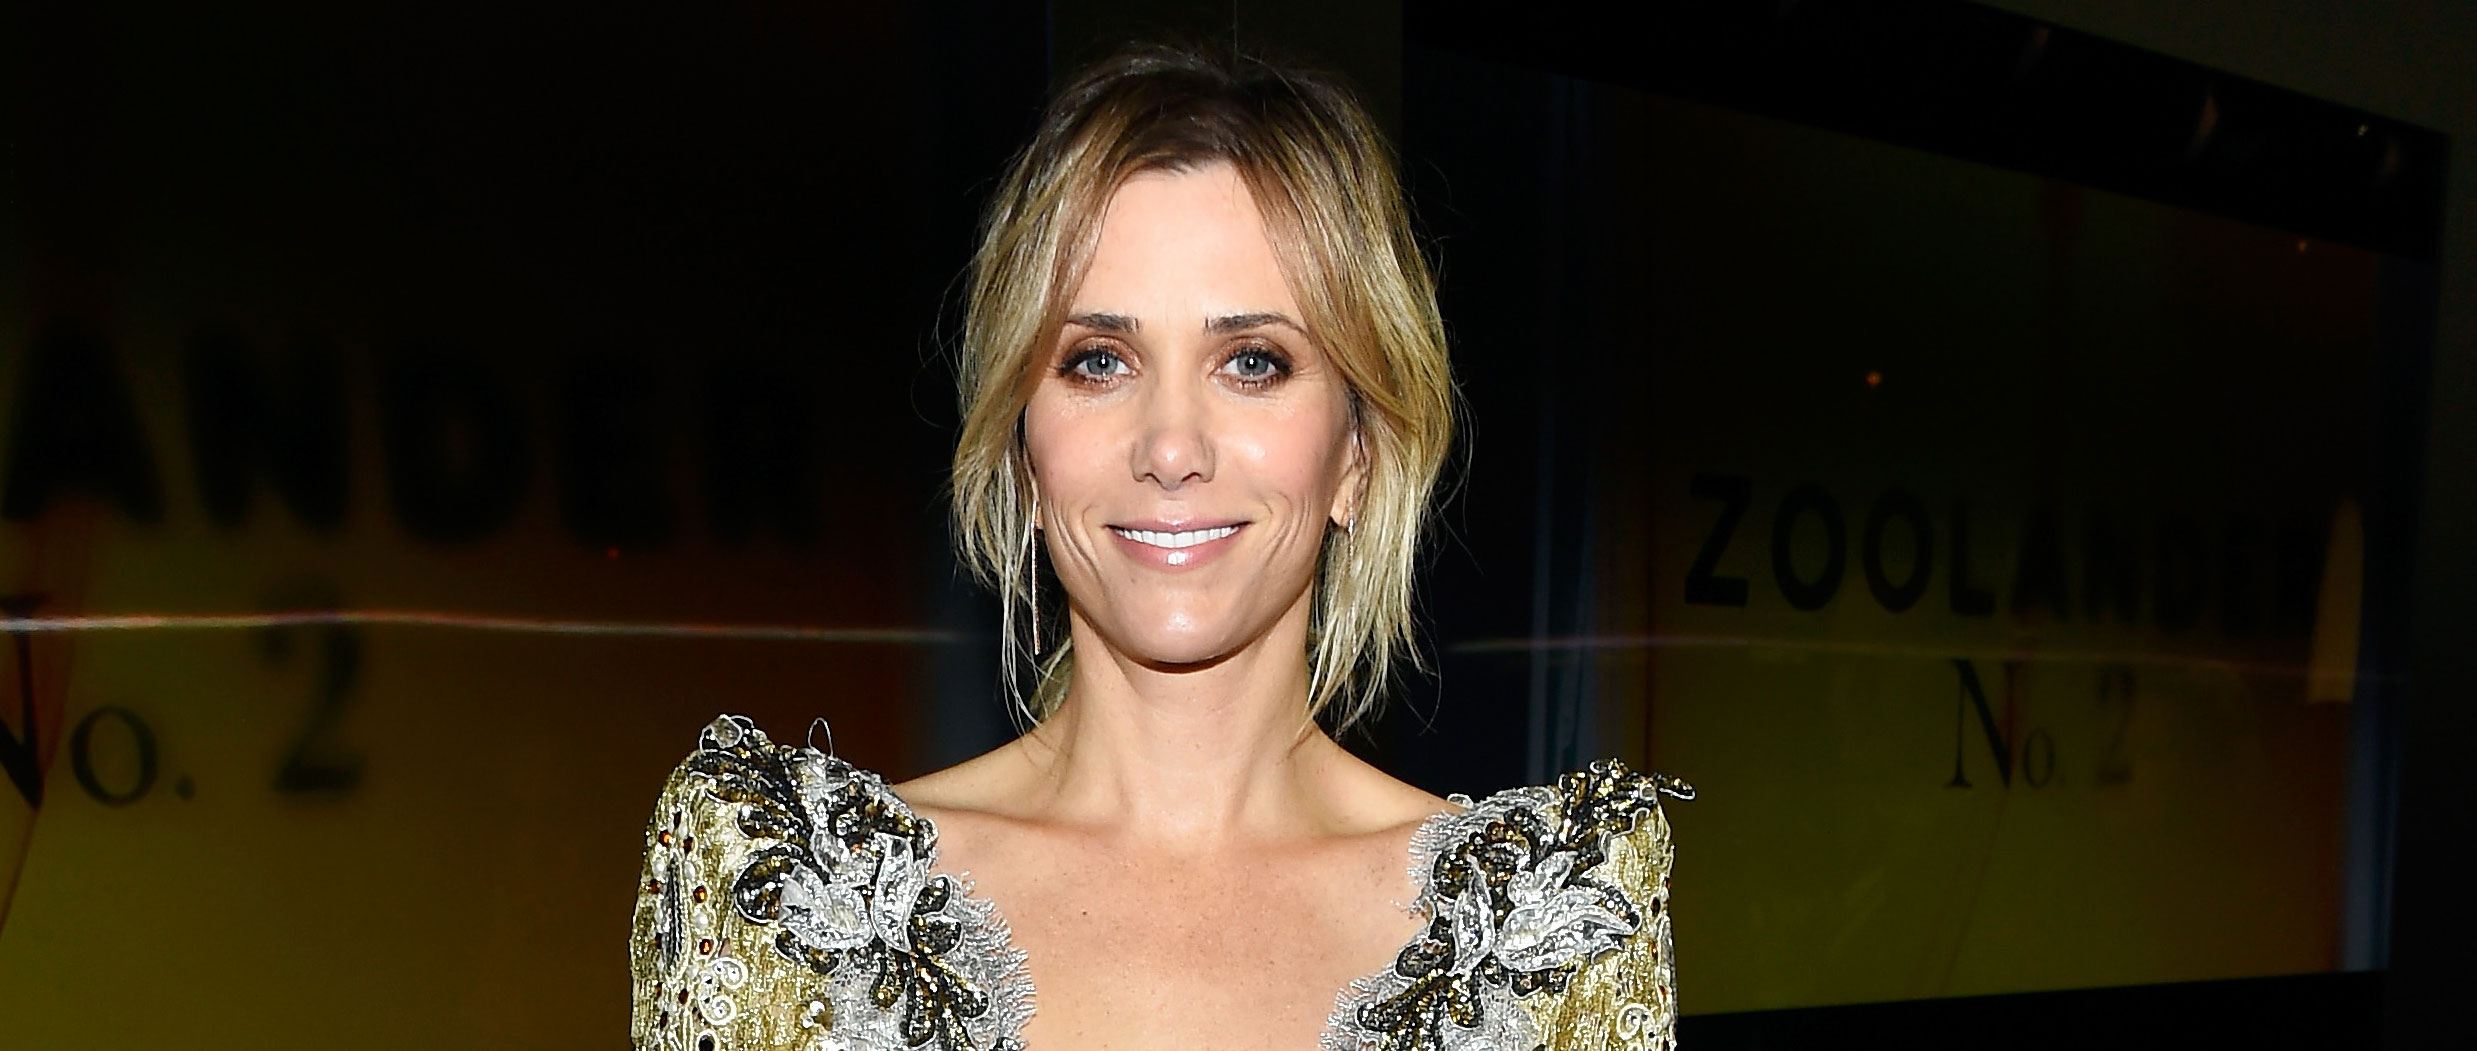 Pics Photos - Kristen Wiig Dating Fabrizio Moretti Actress Opens Up In ...